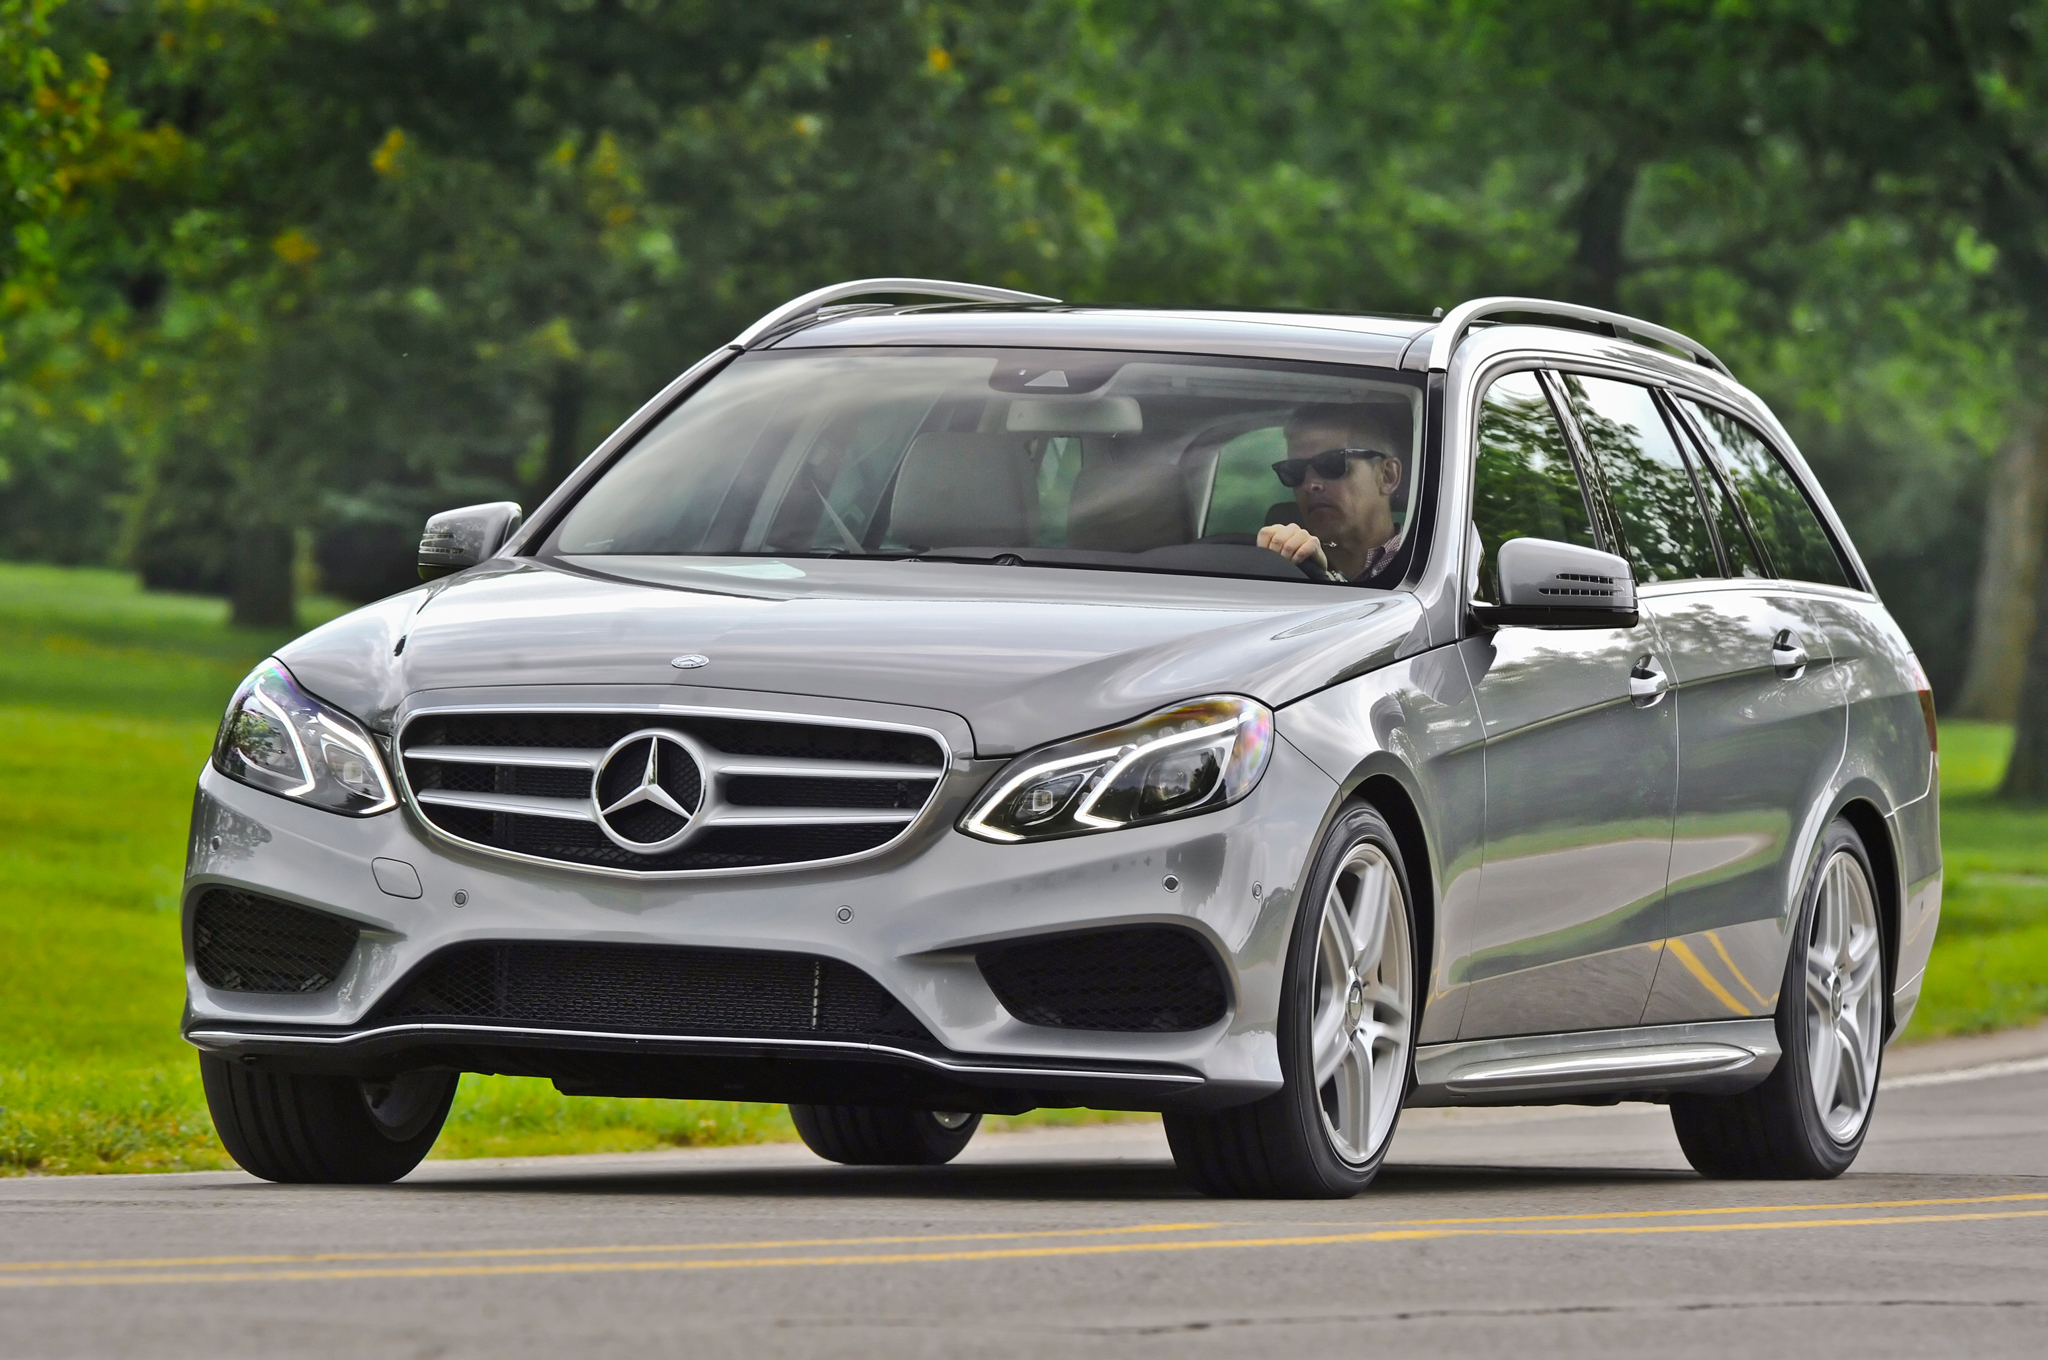 Elegant 2014 Mercedes Benz E350 4Matic Wagon First Drive